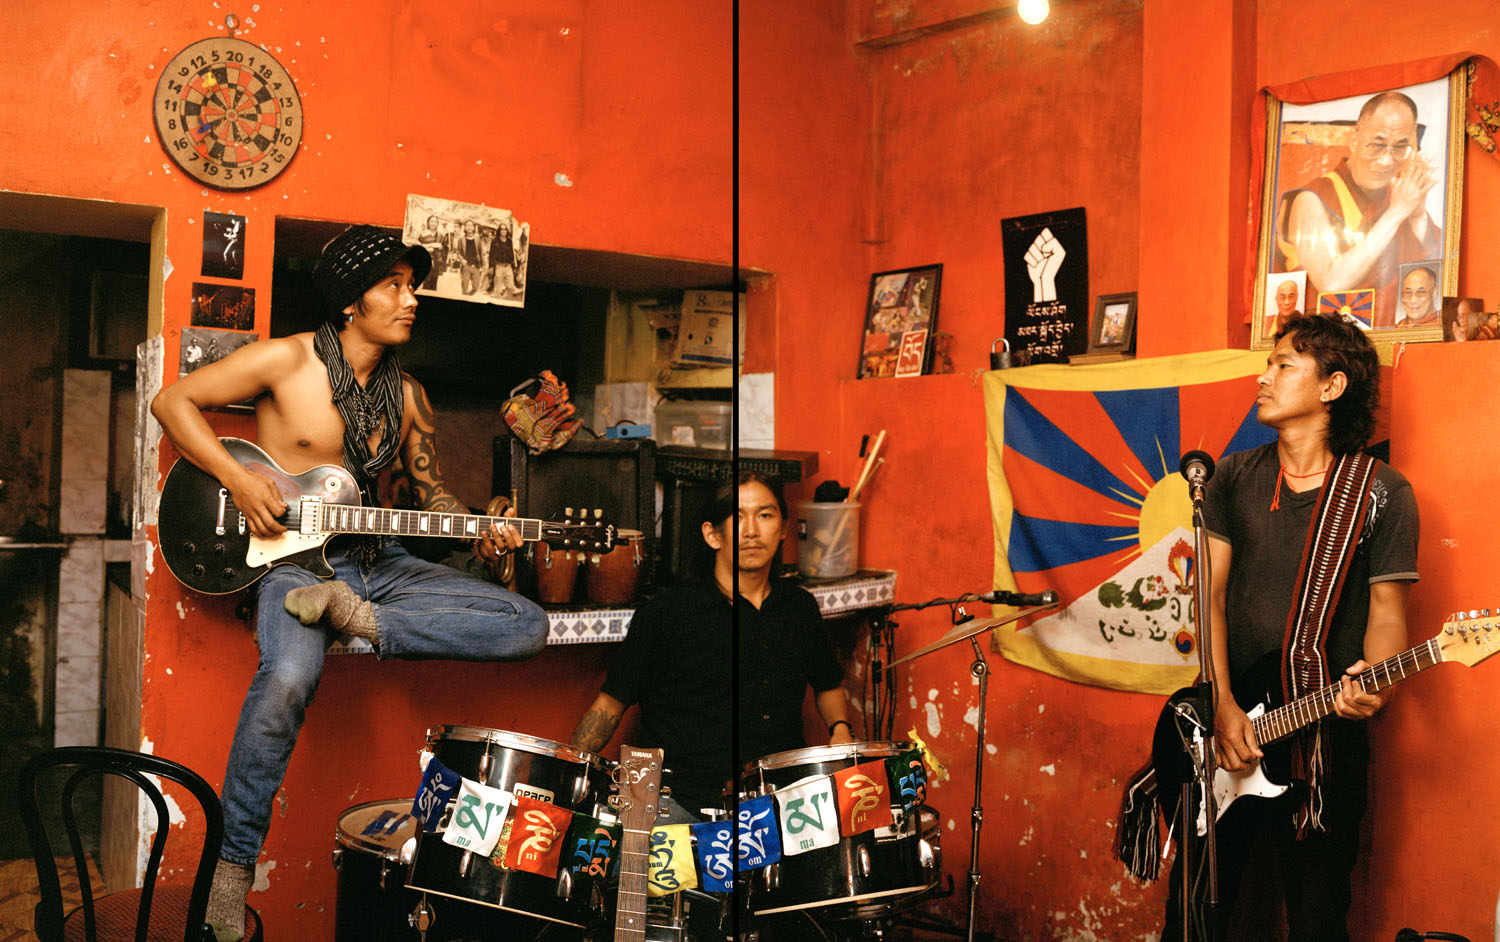 The JJI Exile Brothers, a Tibetan rock band based in Mcleodgunj, practice in the basement of their home for an upcoming performance.